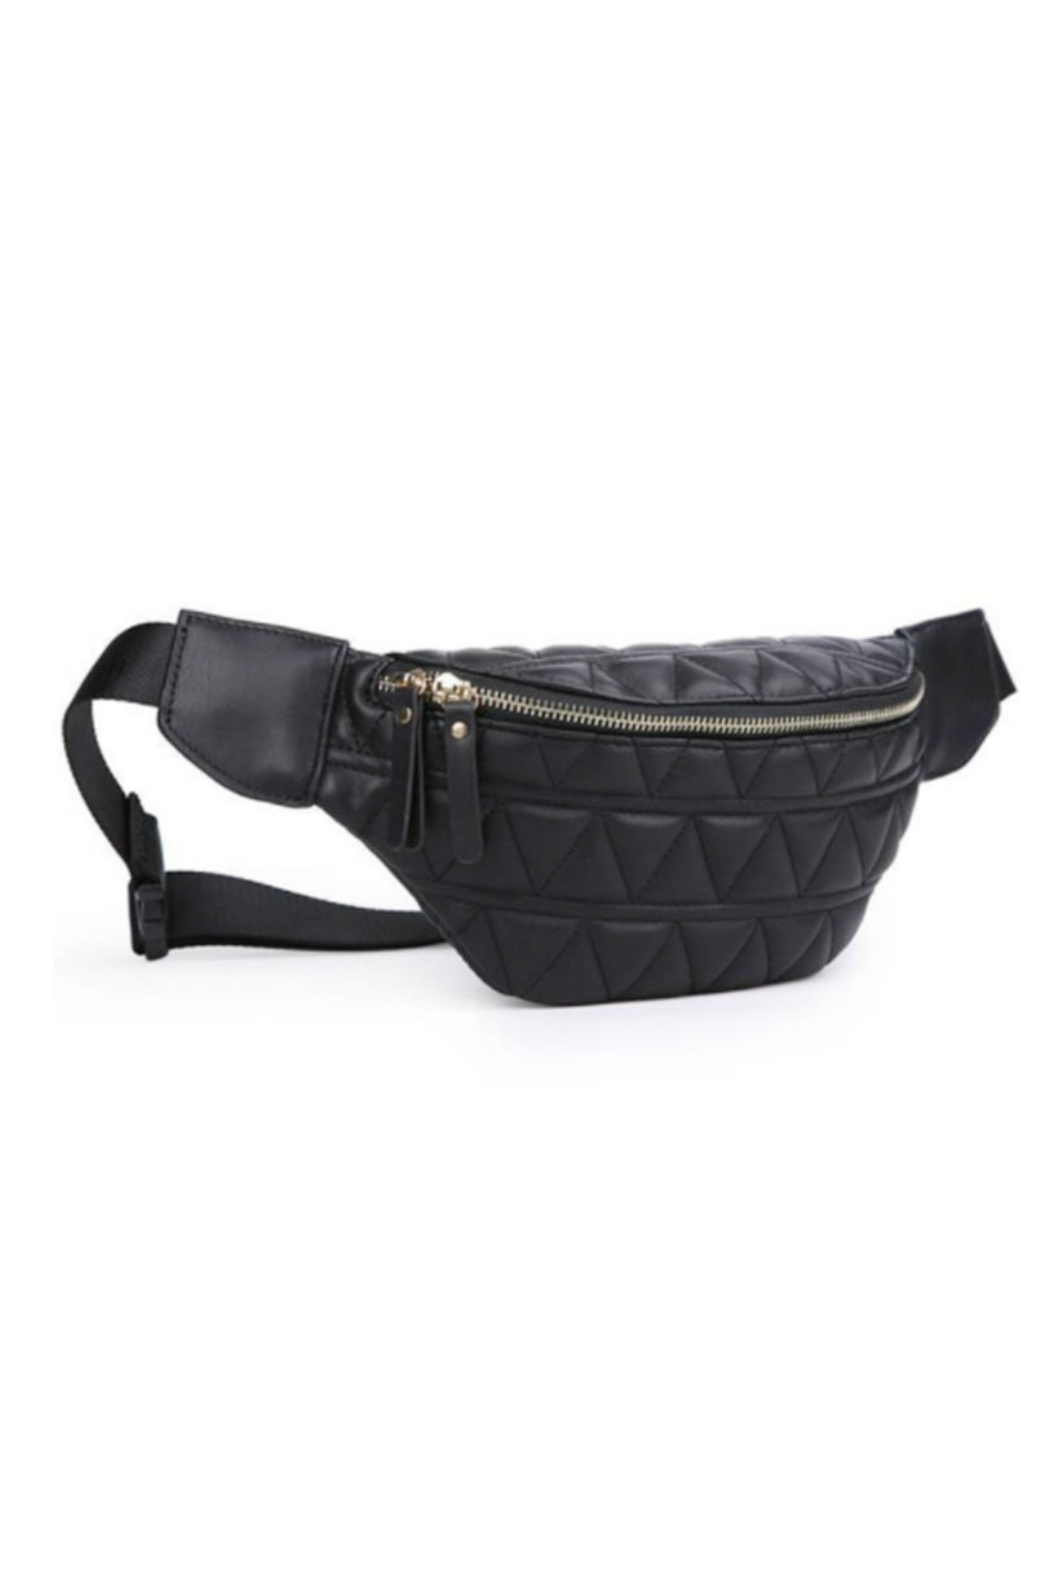 524425c92cc31a Urban Expressions Puma Waist Bag from New York by Let s Bag It